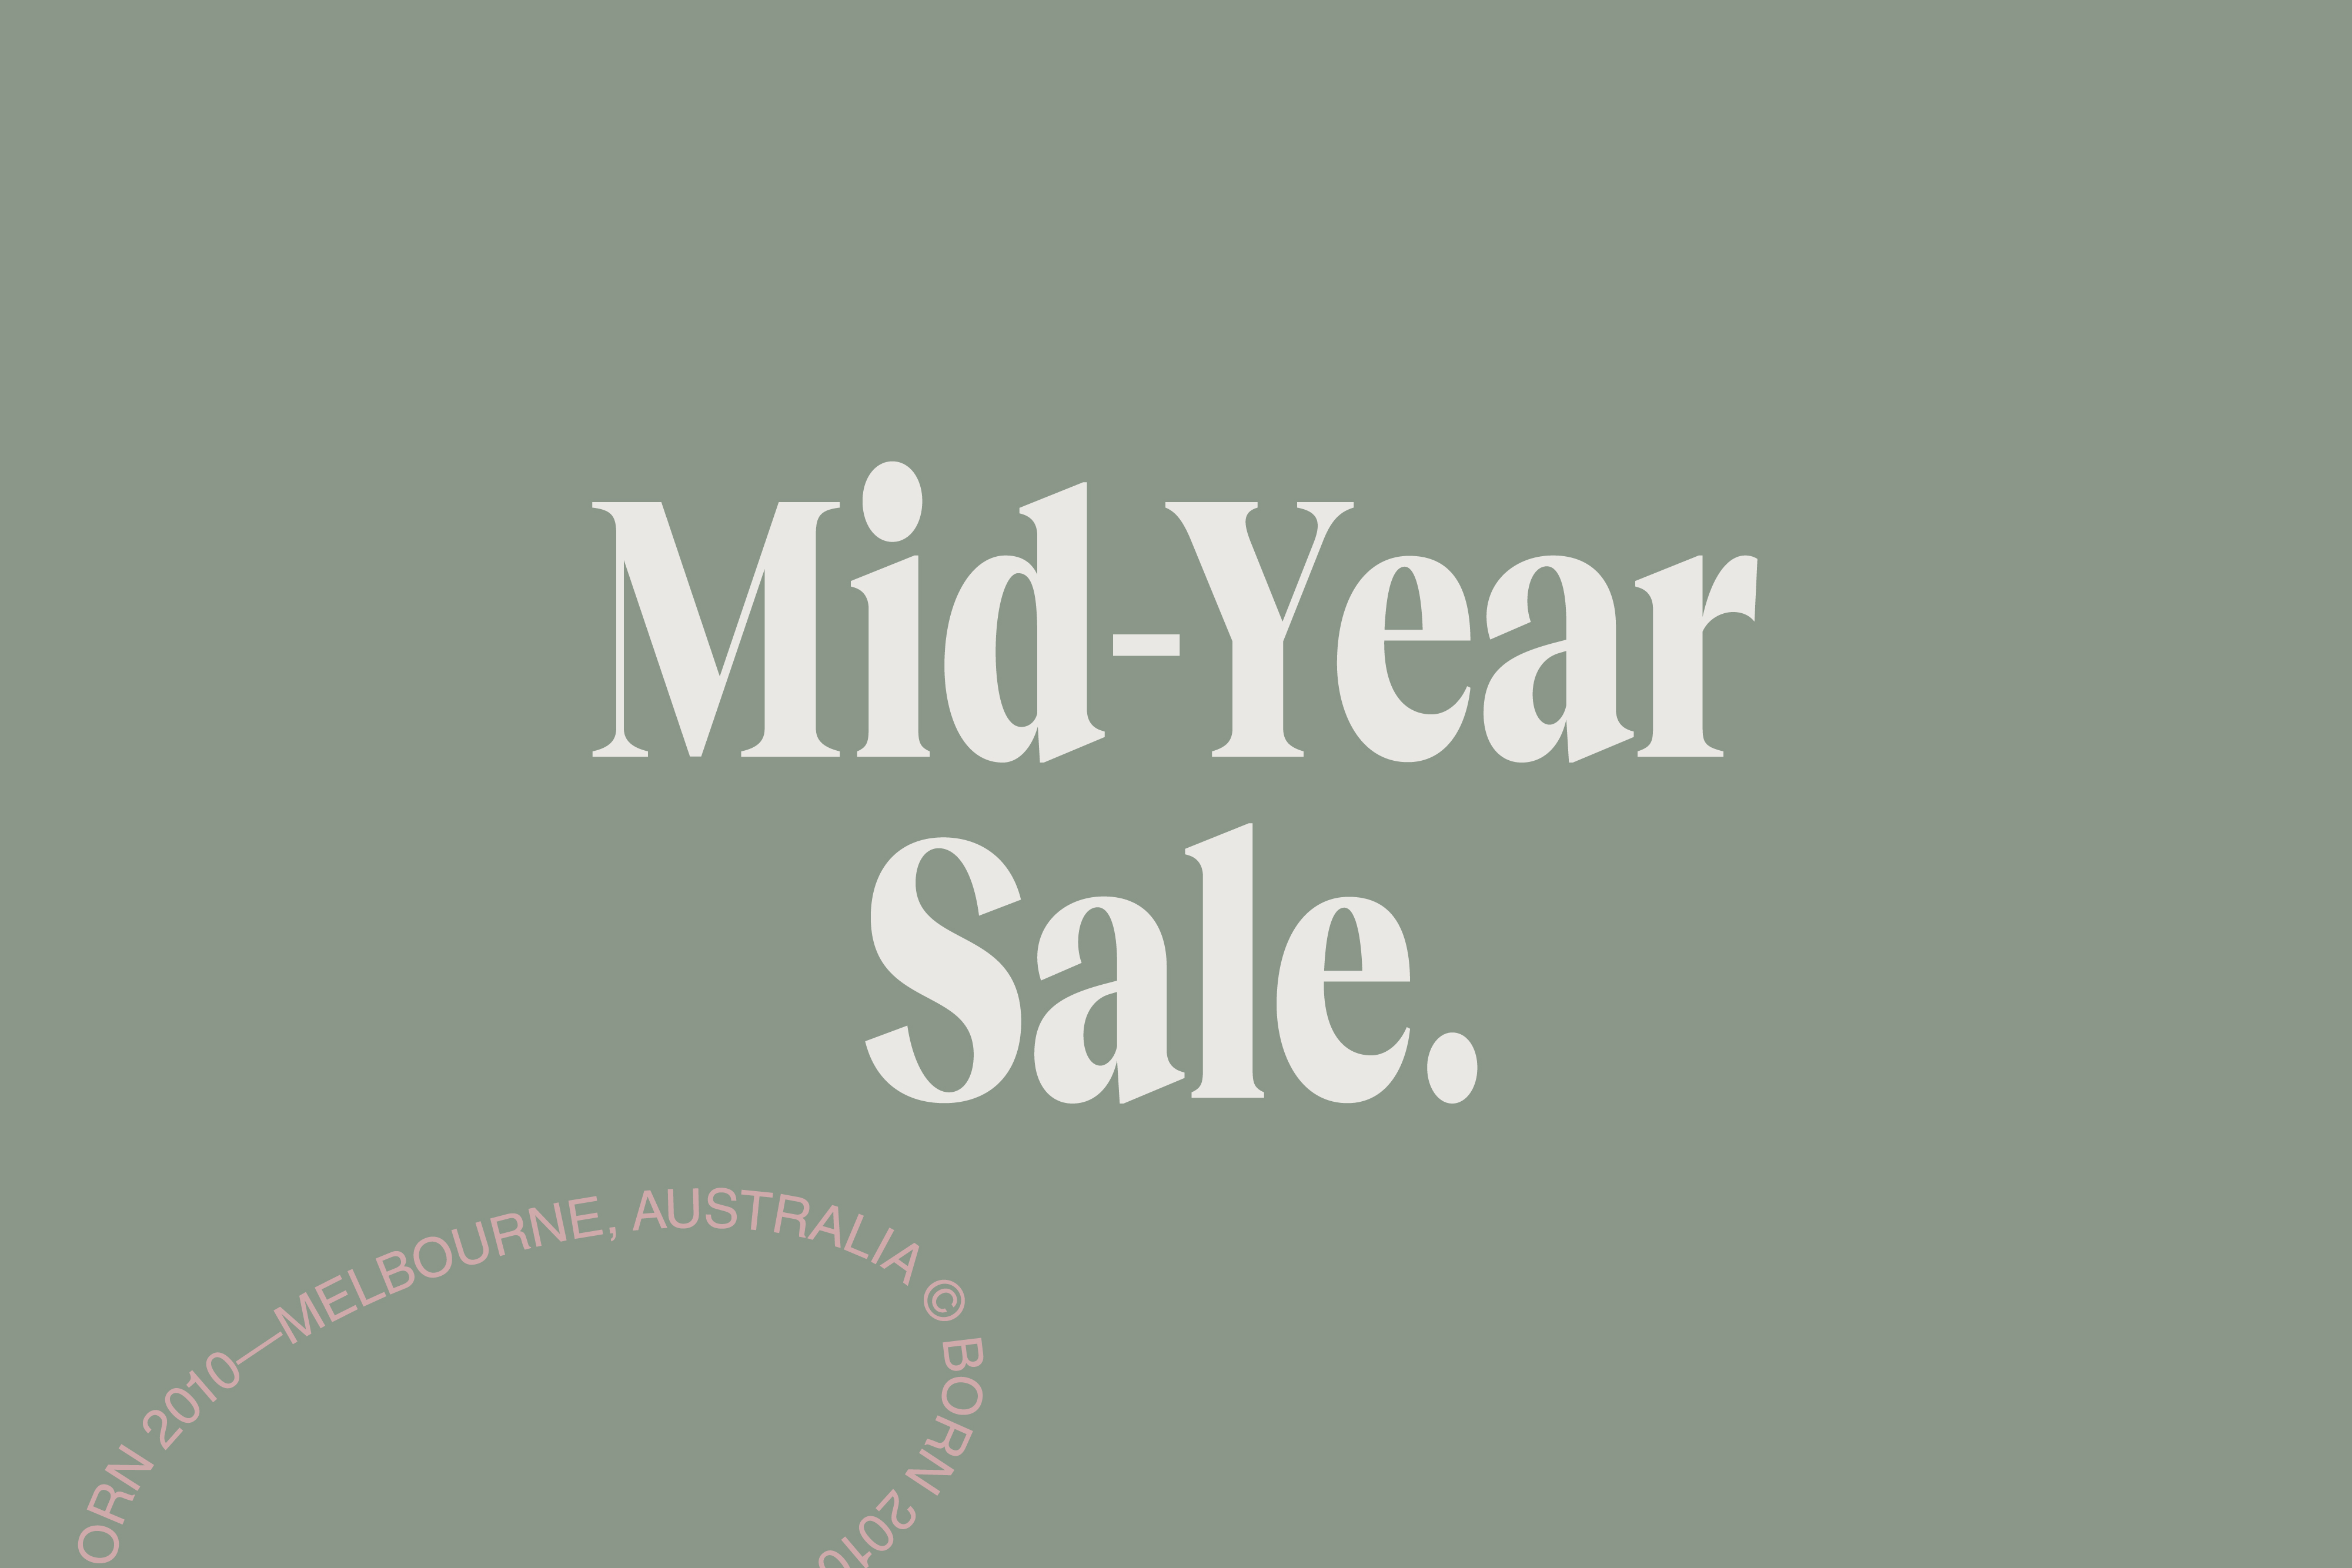 Up There Mid-Year Sale!